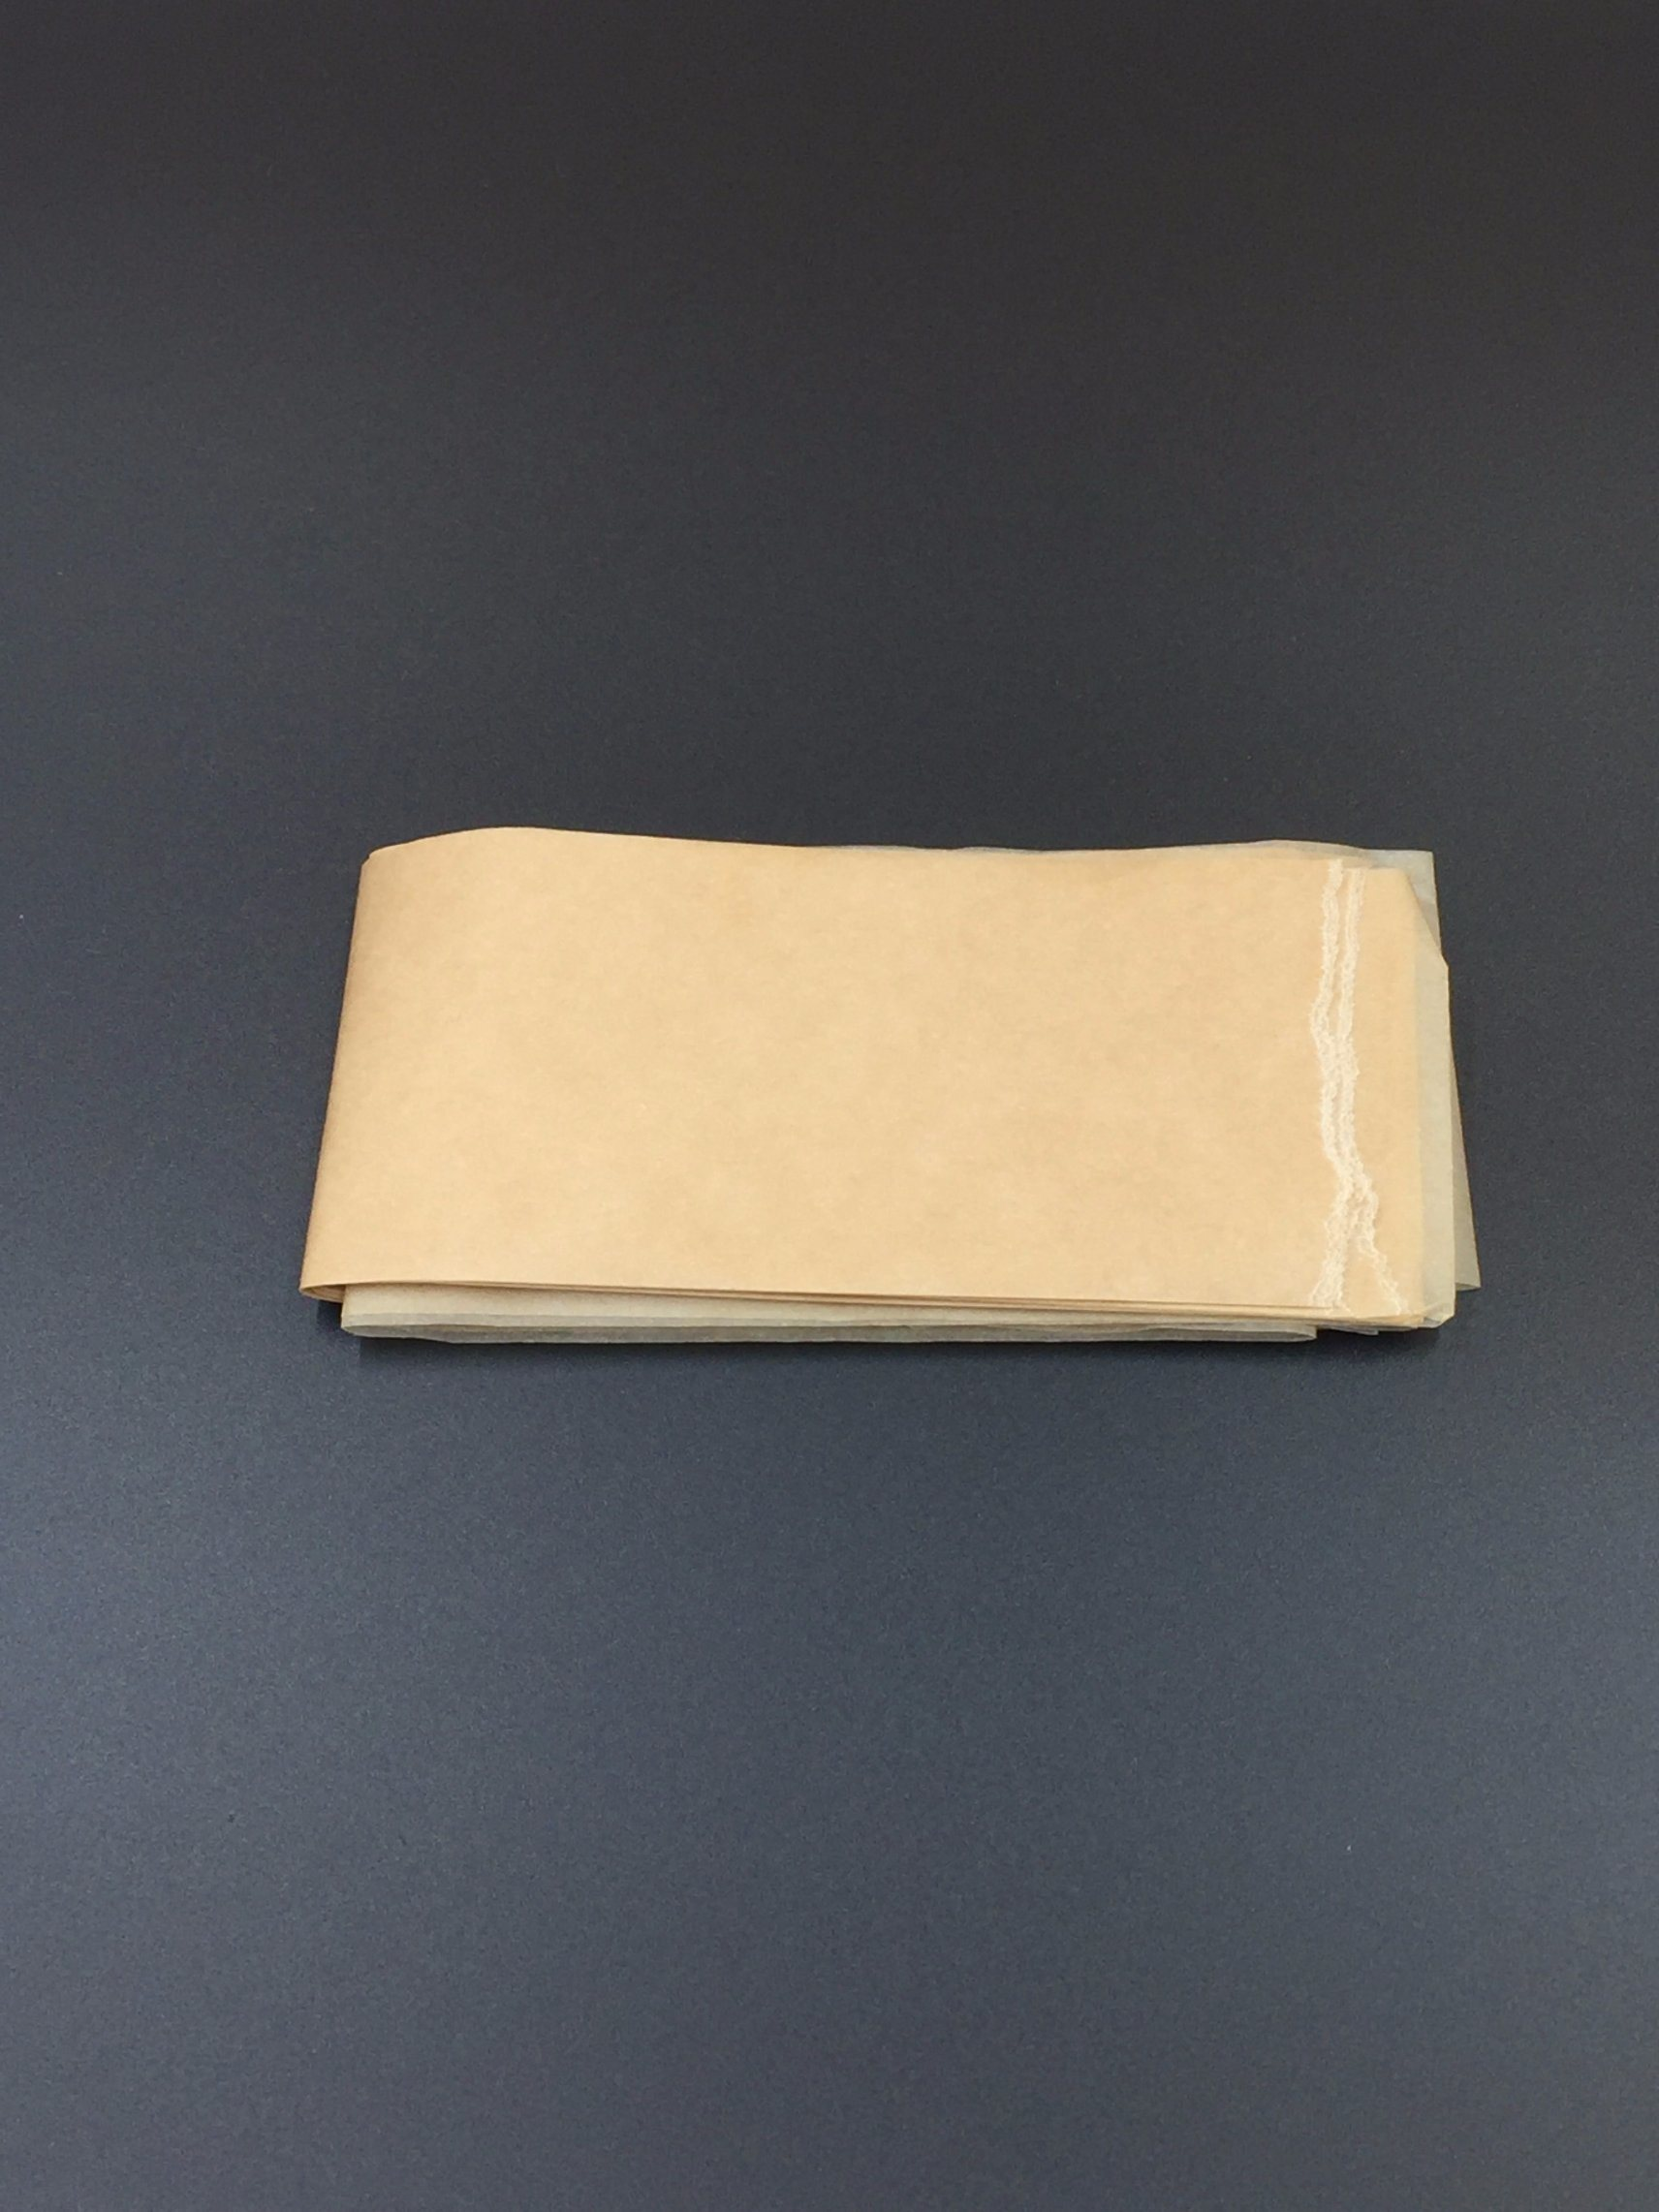 1 1/4 Size with 12.5GSM Brown Color Smoking Rolling Paper